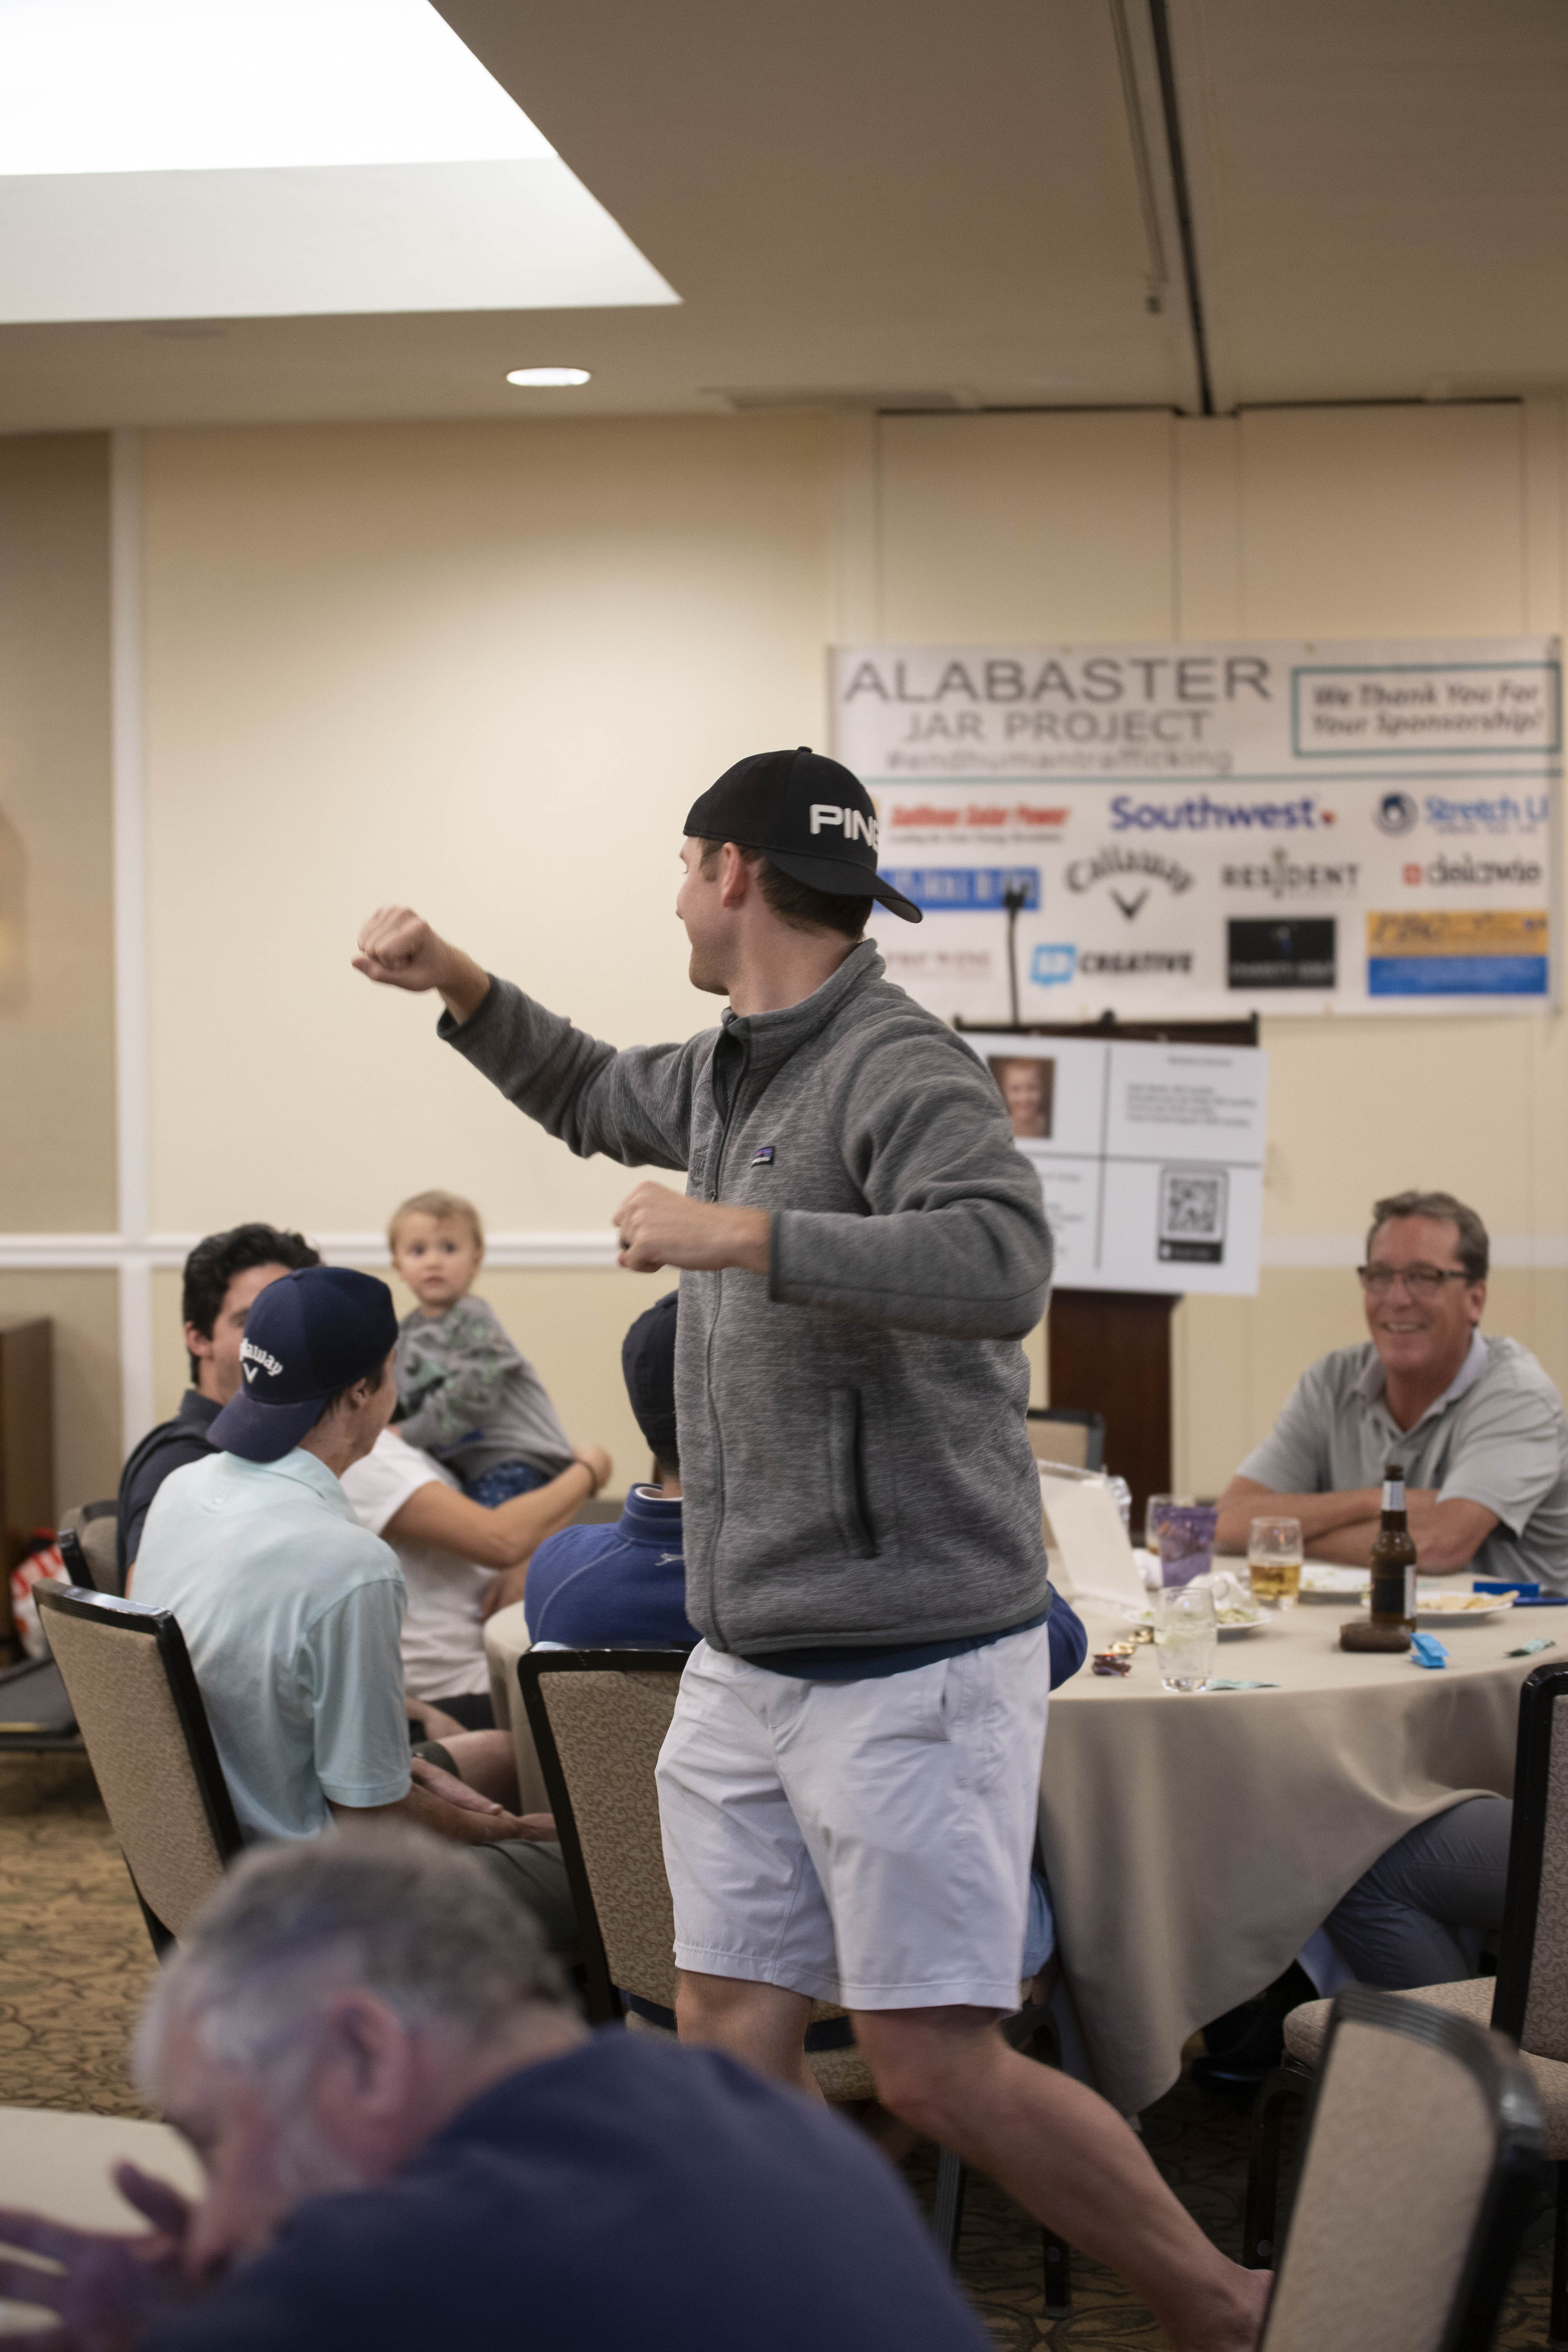 Alabaster Jar Project 501(c)(3) 3rd Annual Golf Tournament Fundraiser gallery image #14